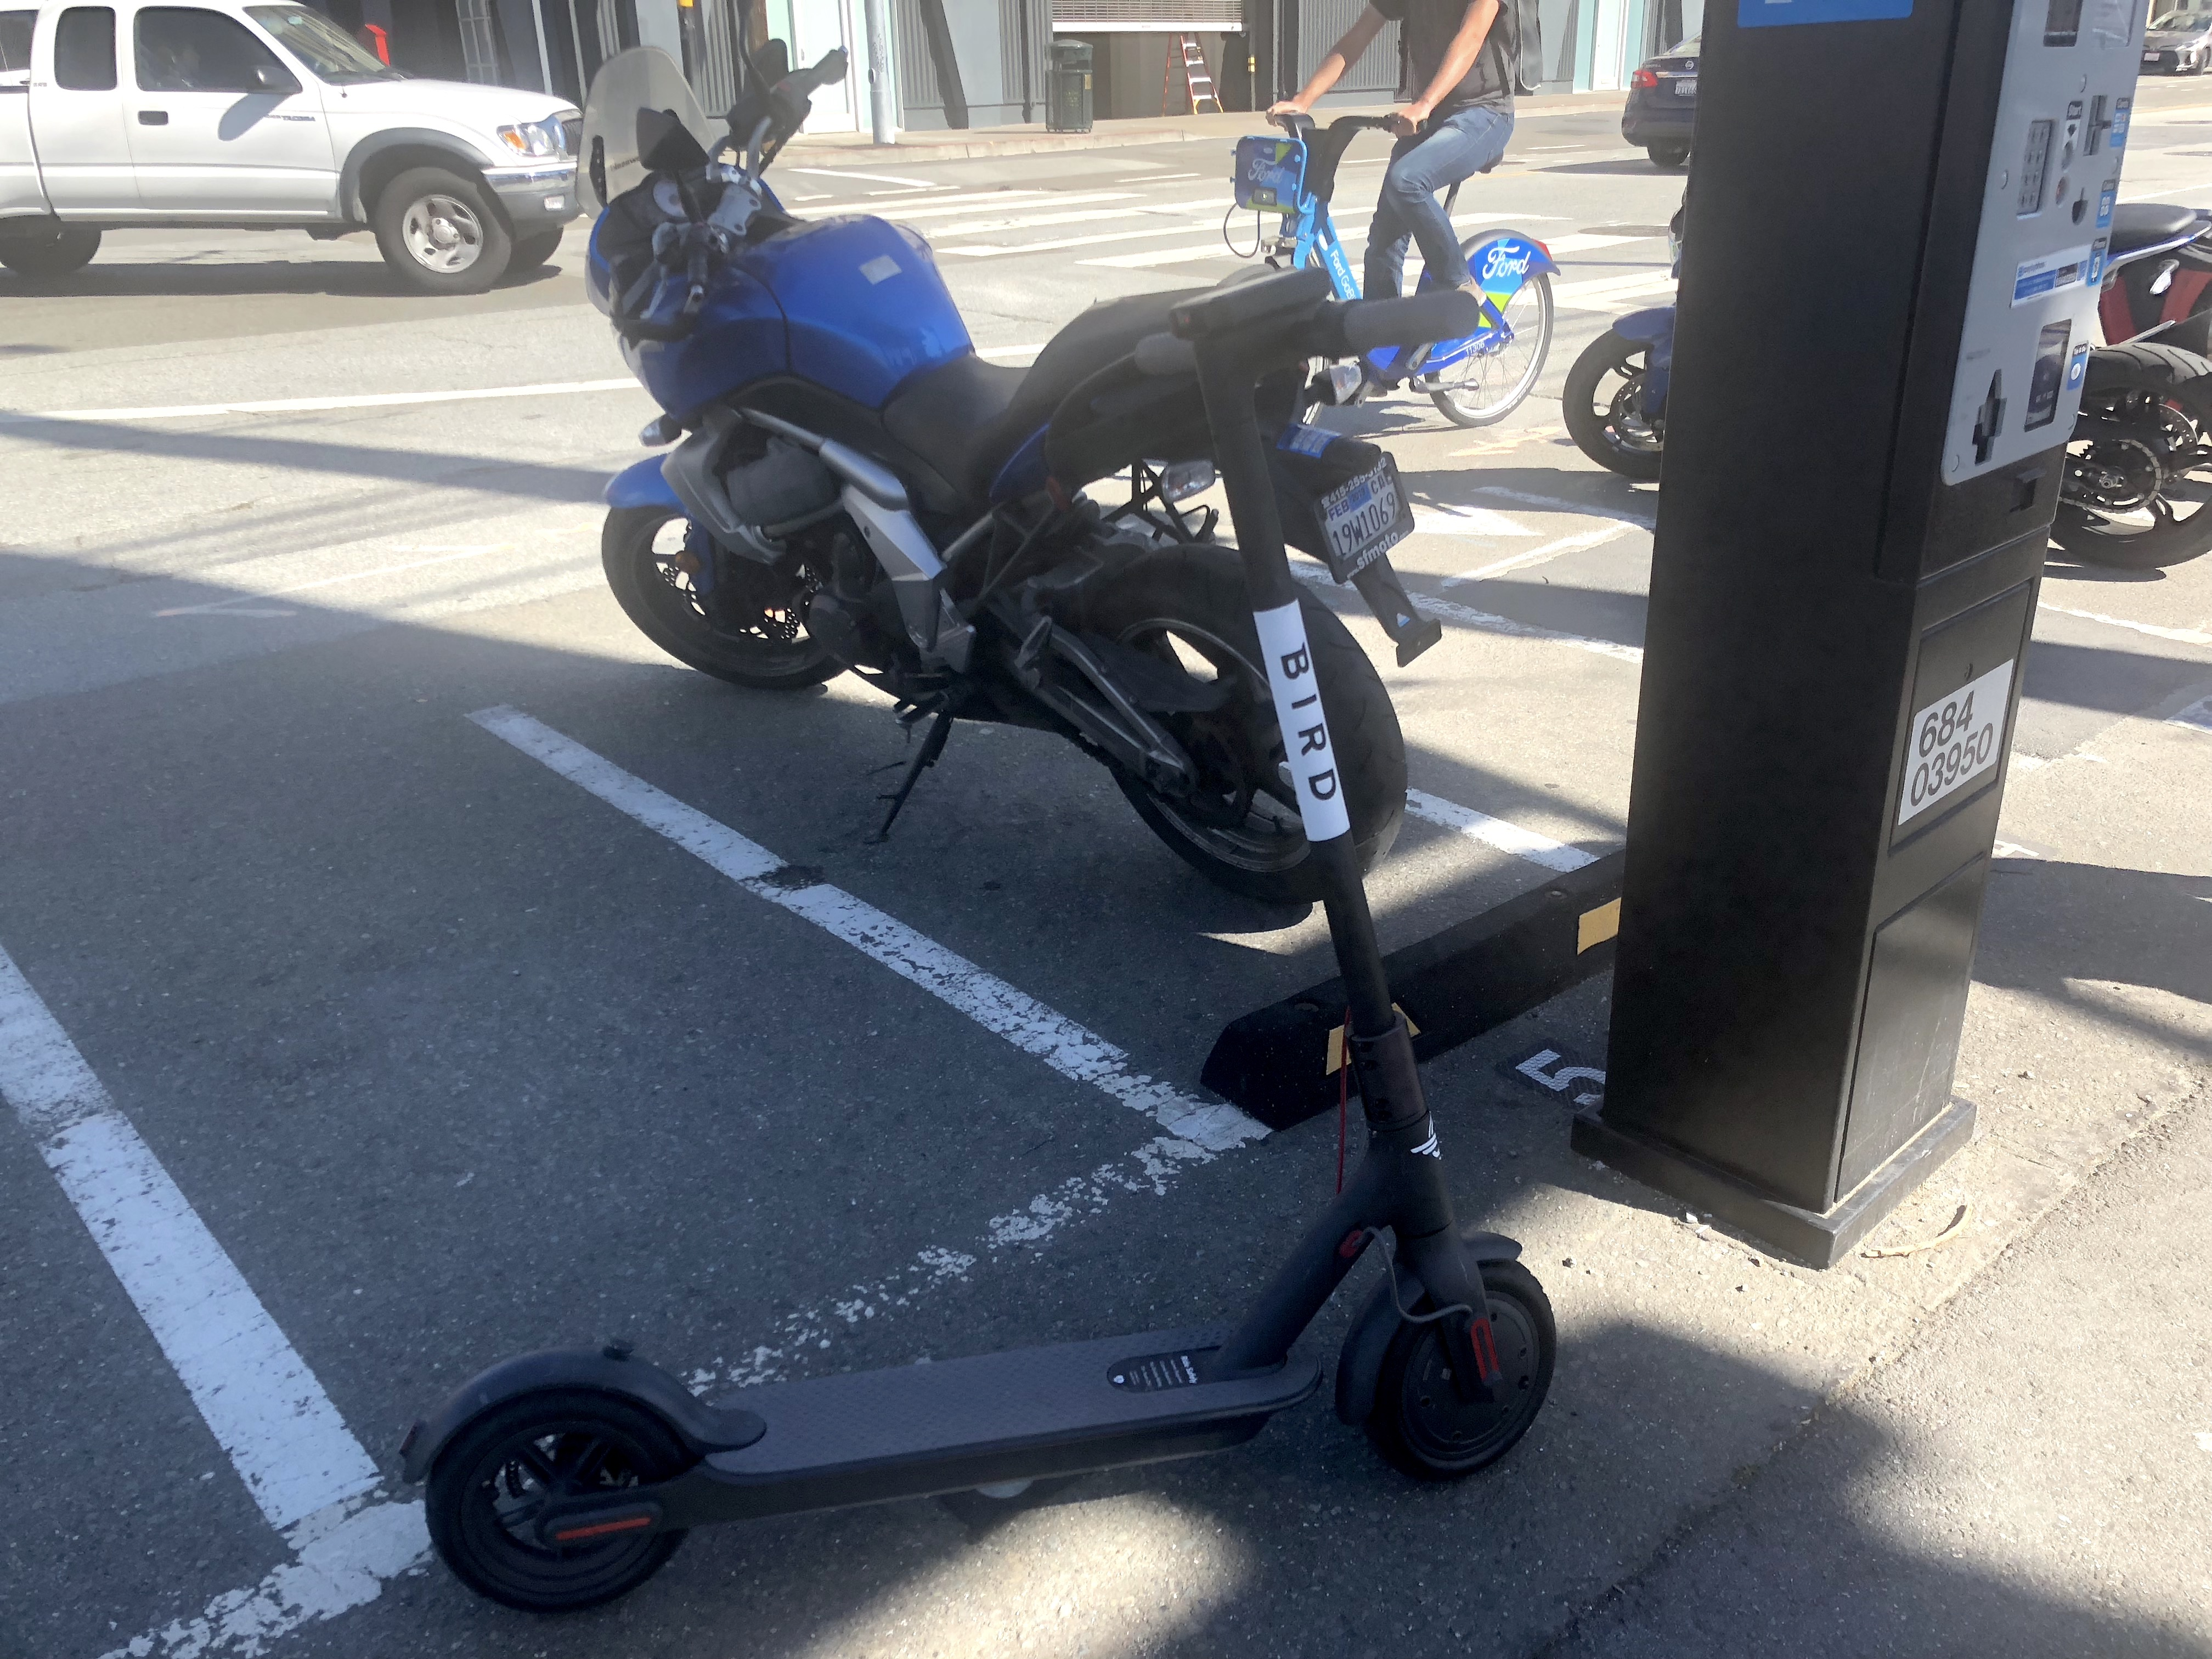 San Francisco wants to curb dockless e-scooters